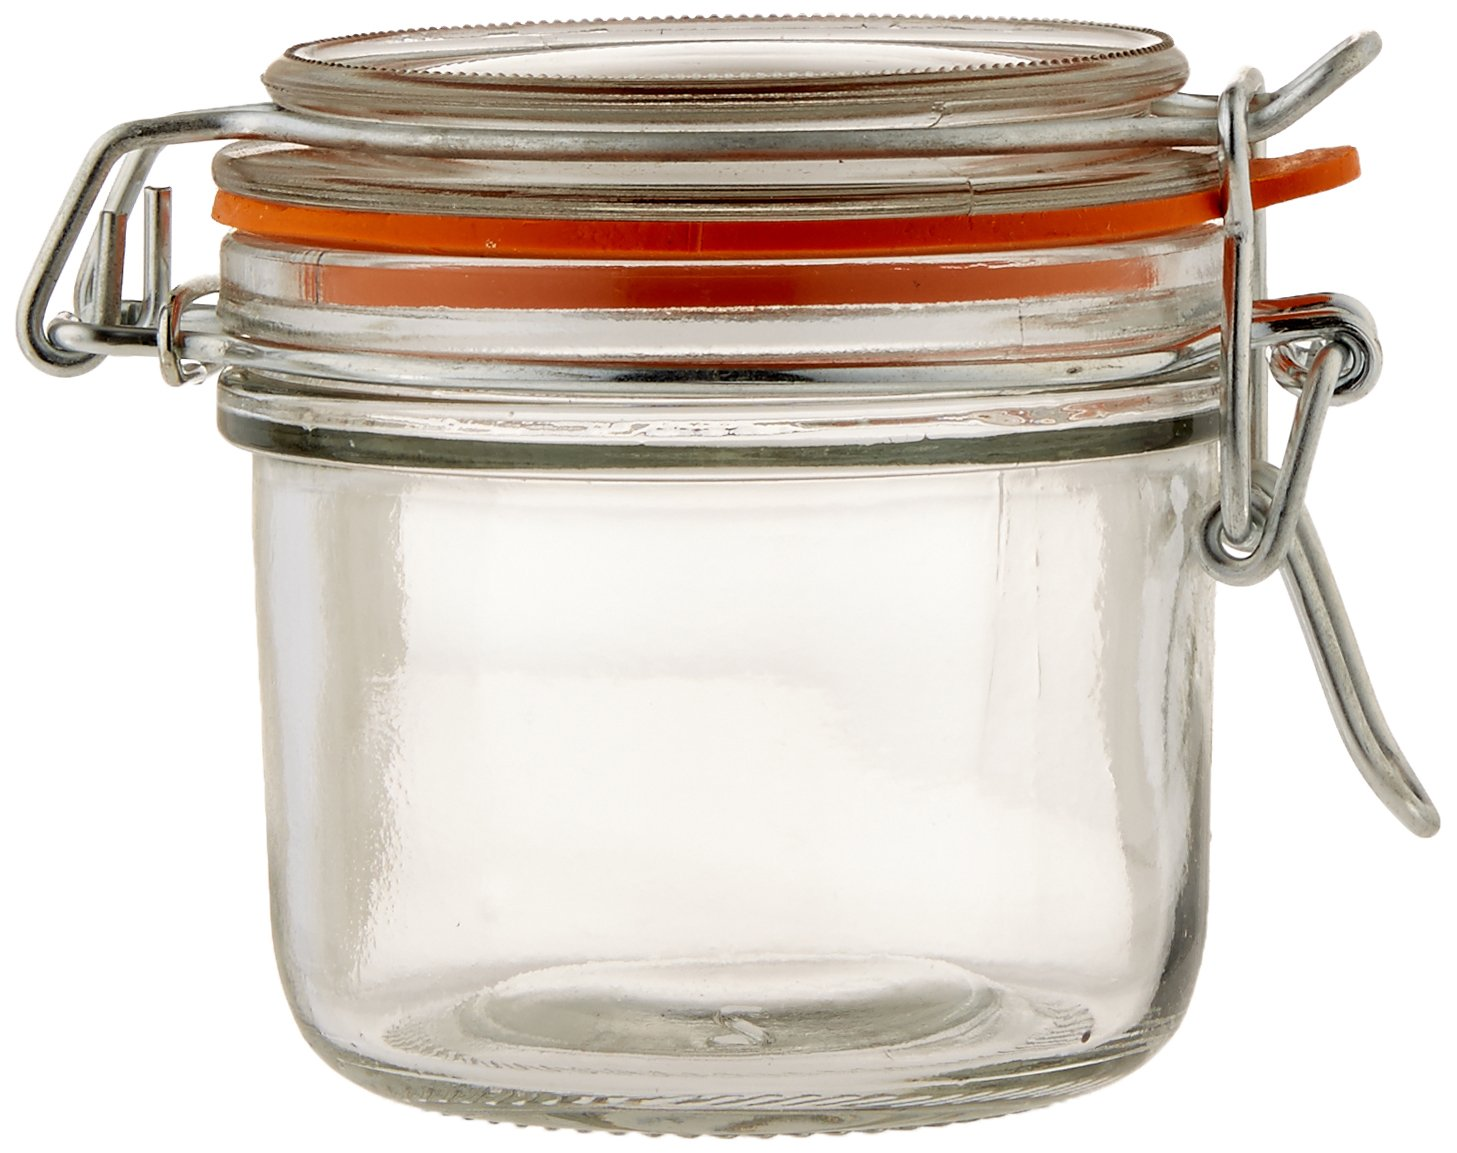 Anchor Hocking 5.4-Ounce Mini Glass Jar with Hermes Clamp Top Lid, Set of 12 98908